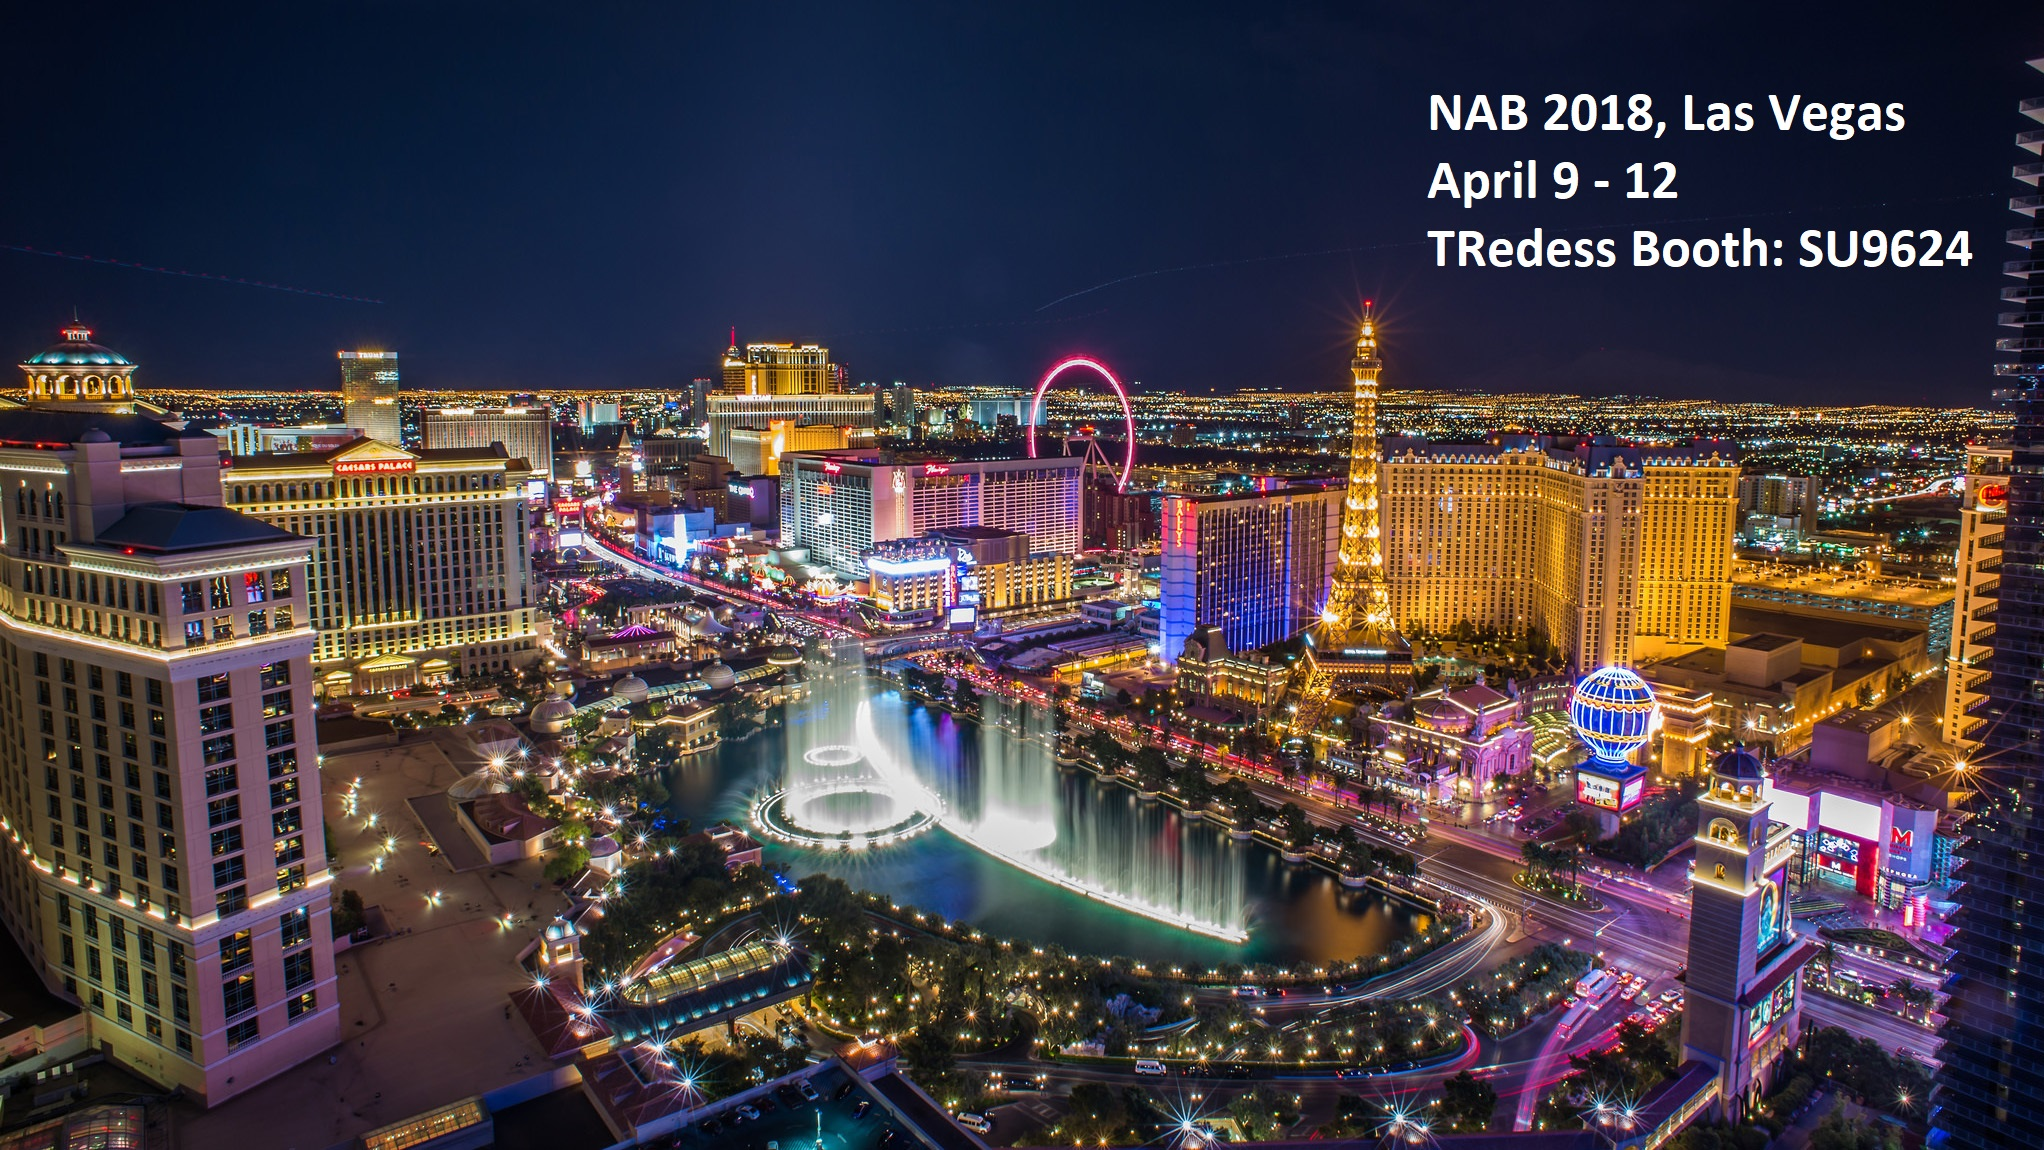 TRedess will participate at NAB Show, Las Vegas